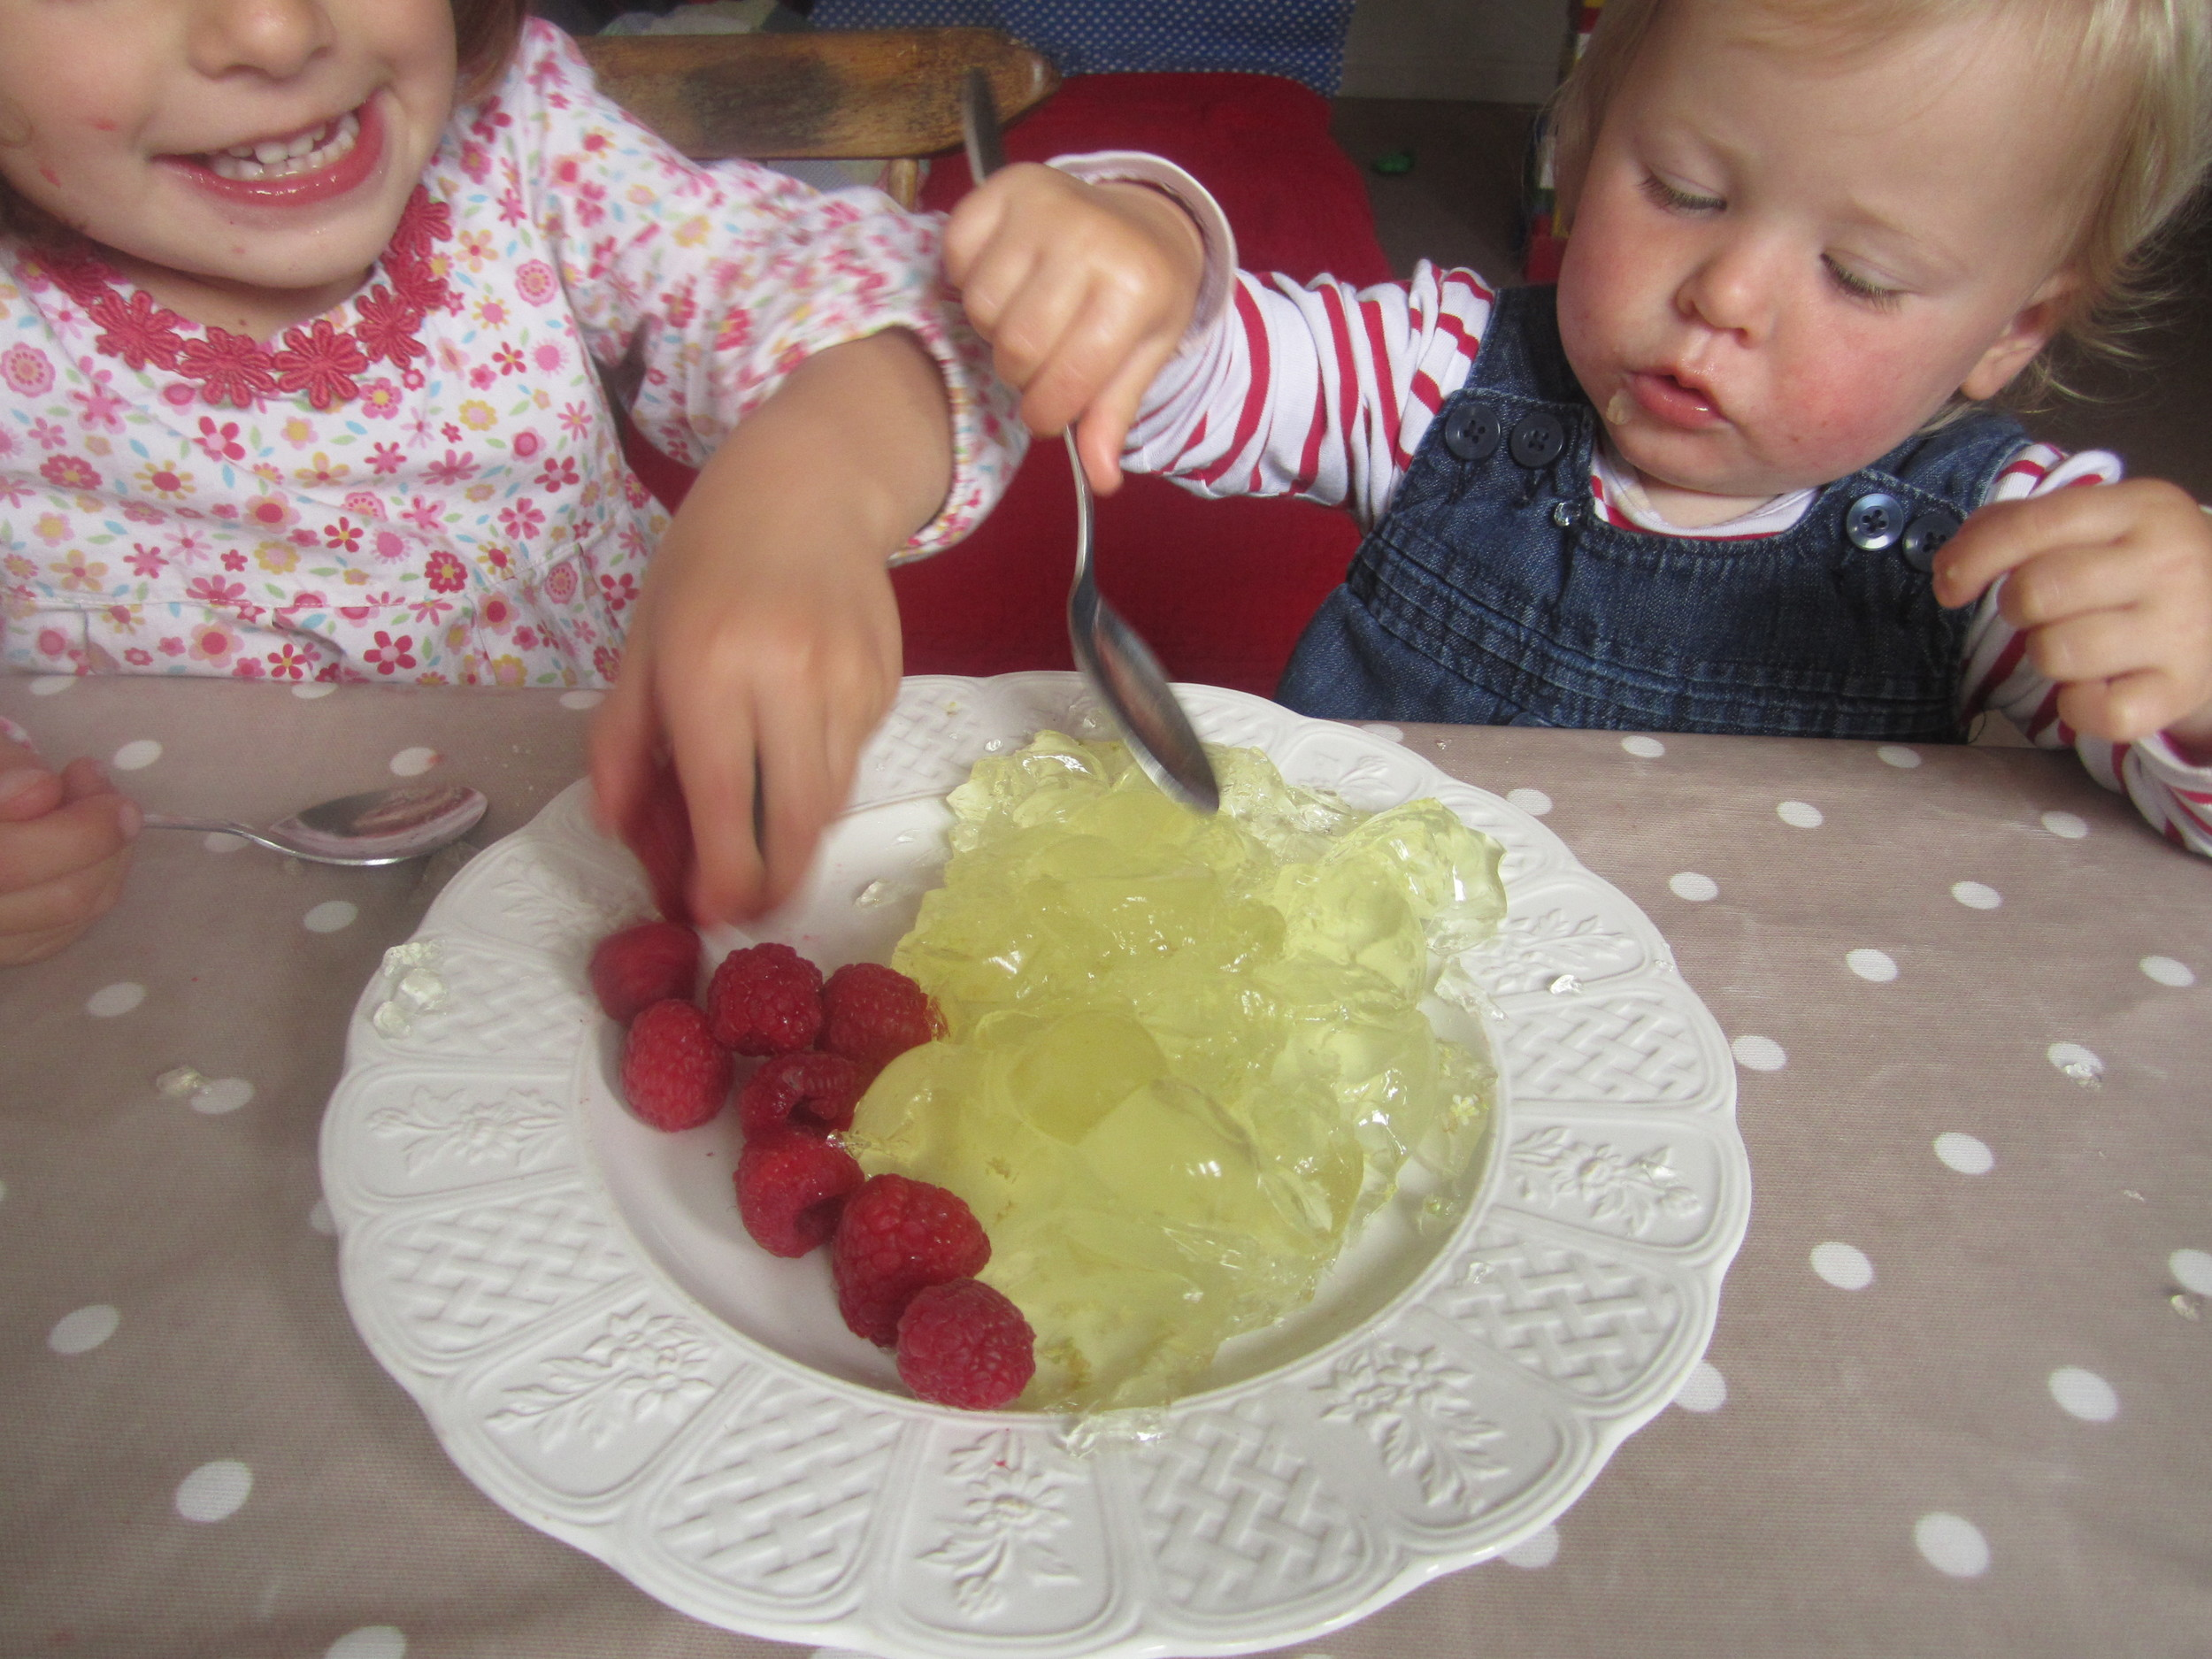 Ivy and Dot demolish an entire jelly. Almost.